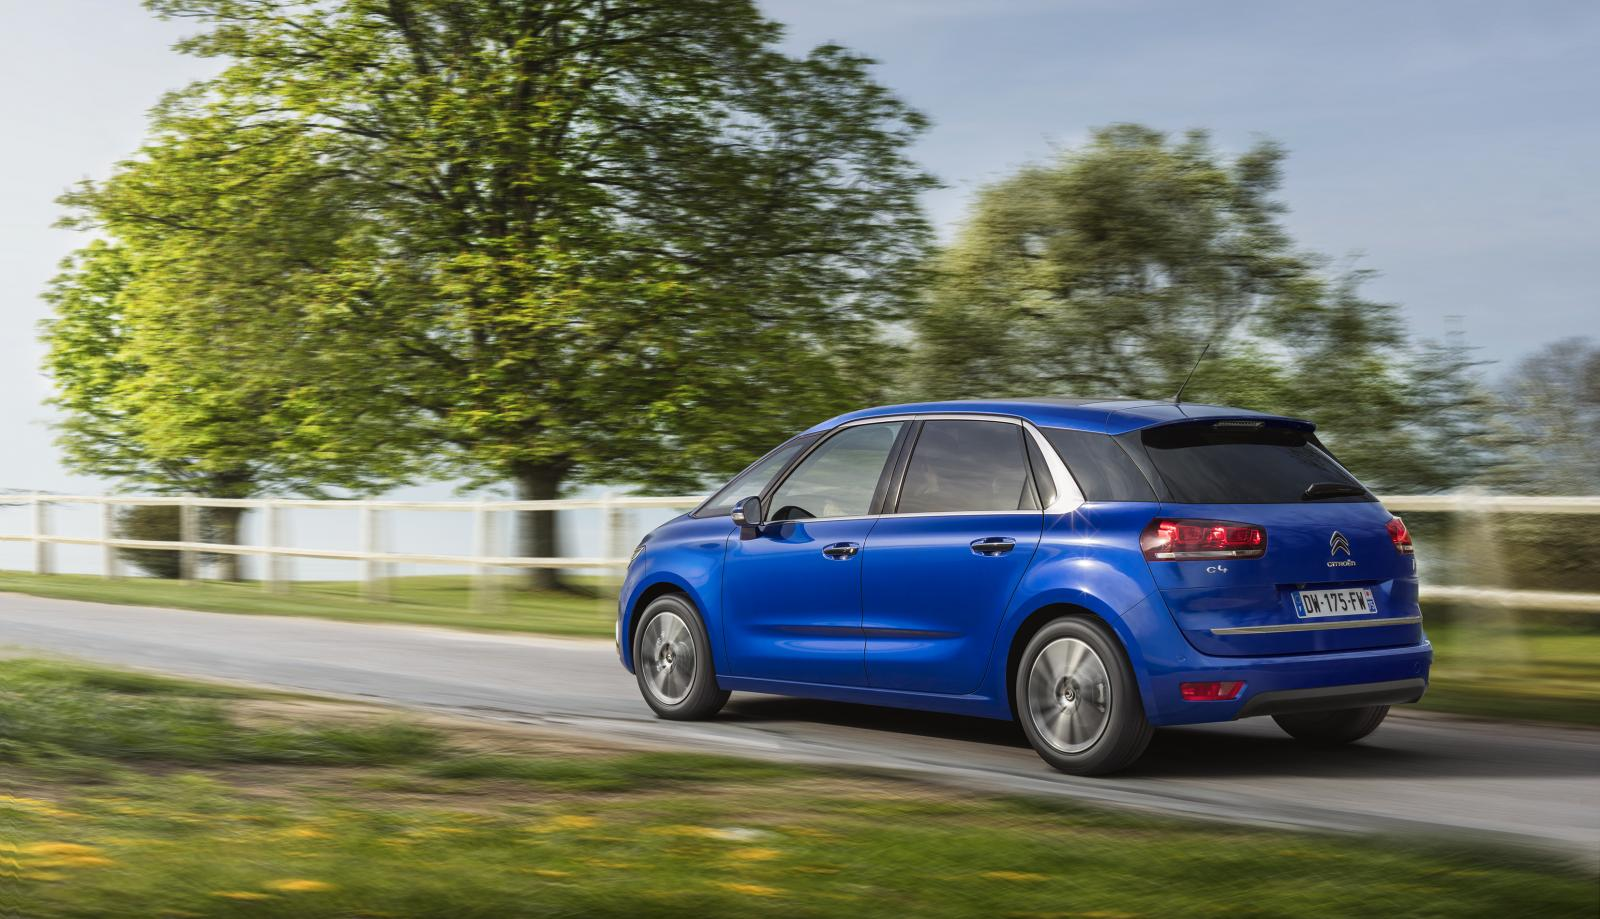 C4 Picasso Shine 2016 rear 3/4